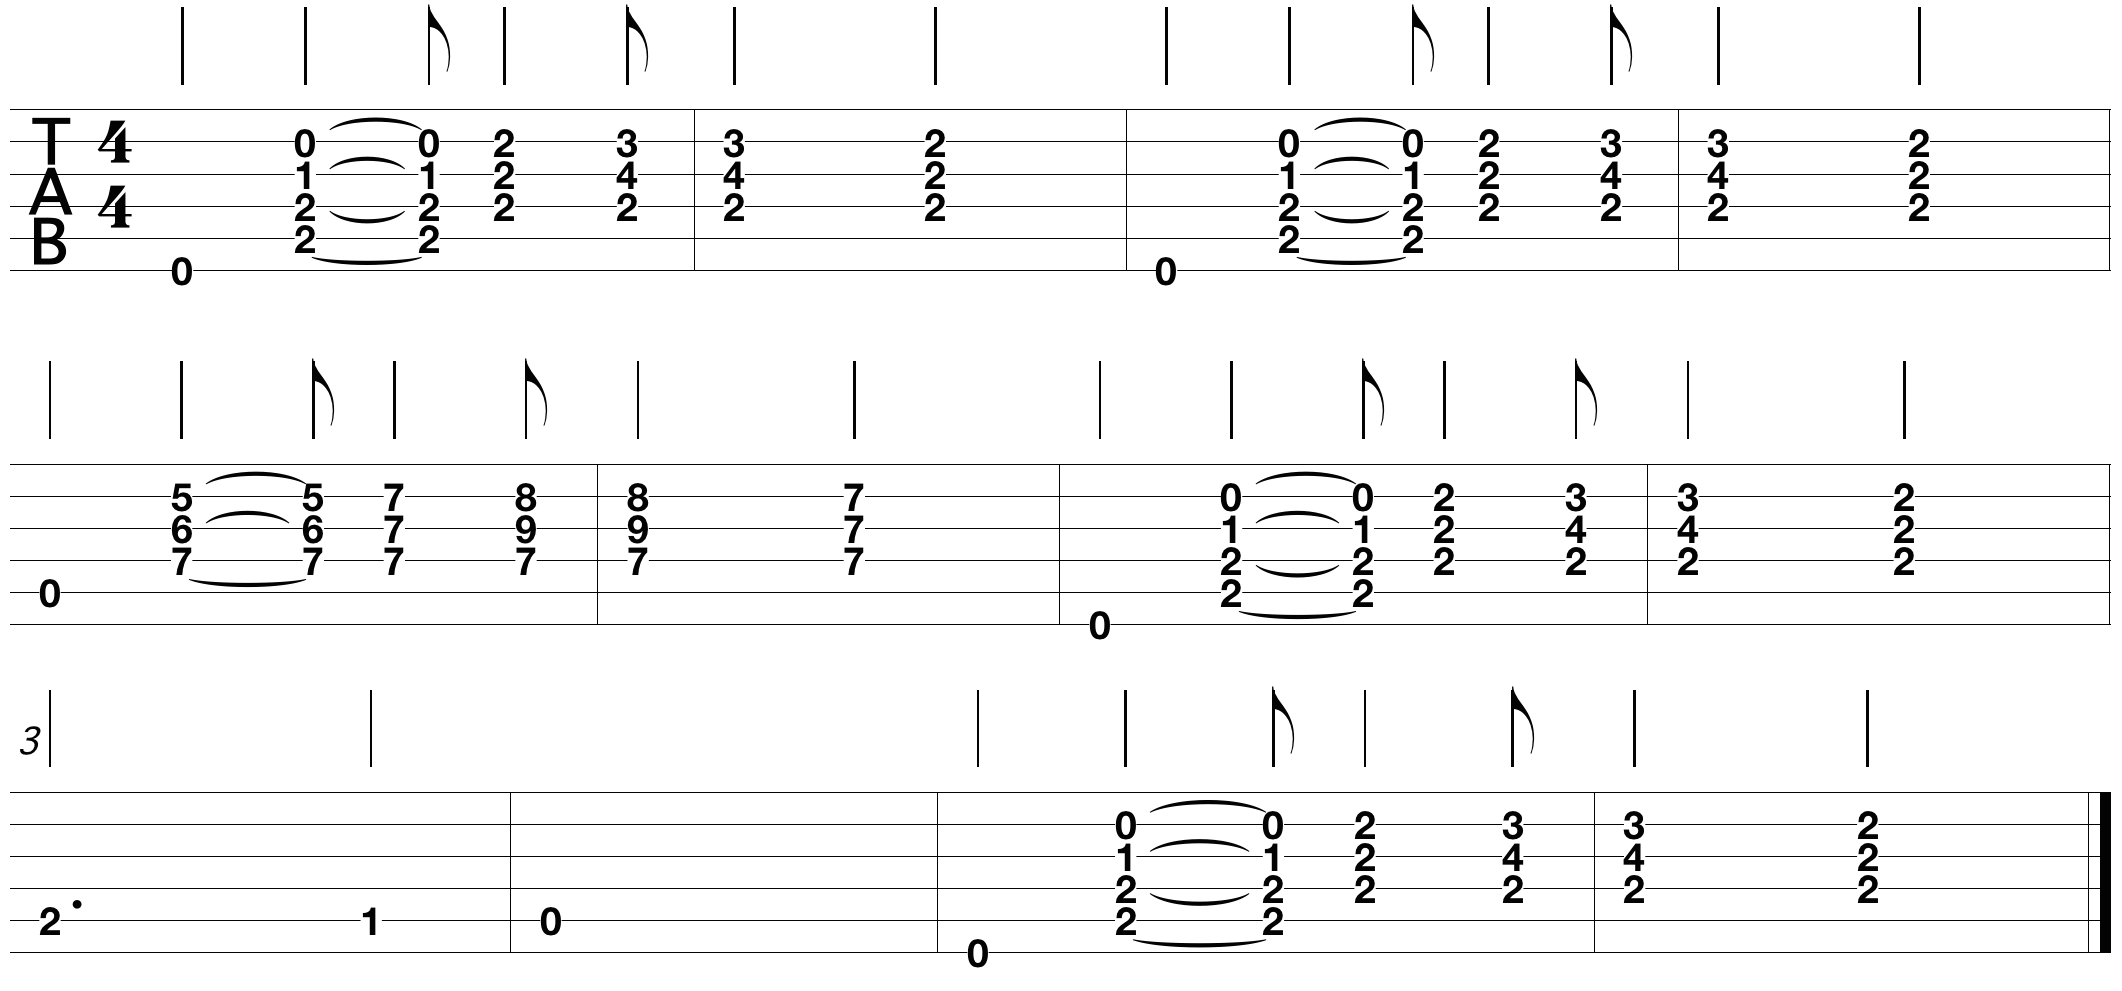 blues-guitar-tabs-for-beginners_3.png